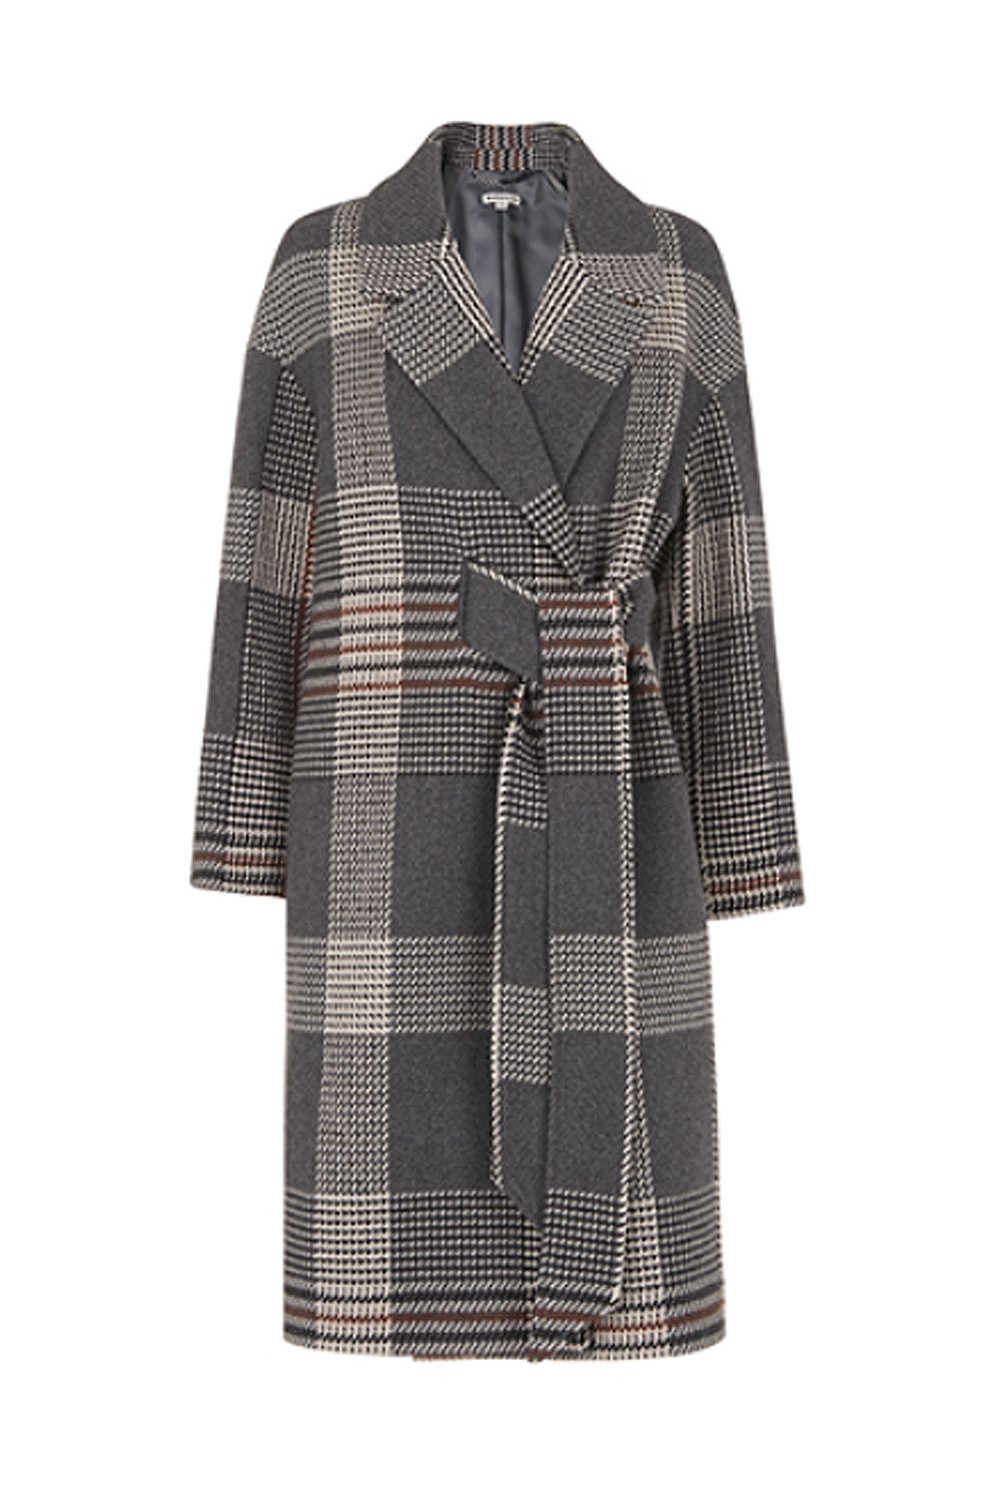 a6ed954465c7 29 Warm Winter Coats to Make You Stand Out in a Crowd of Black ...